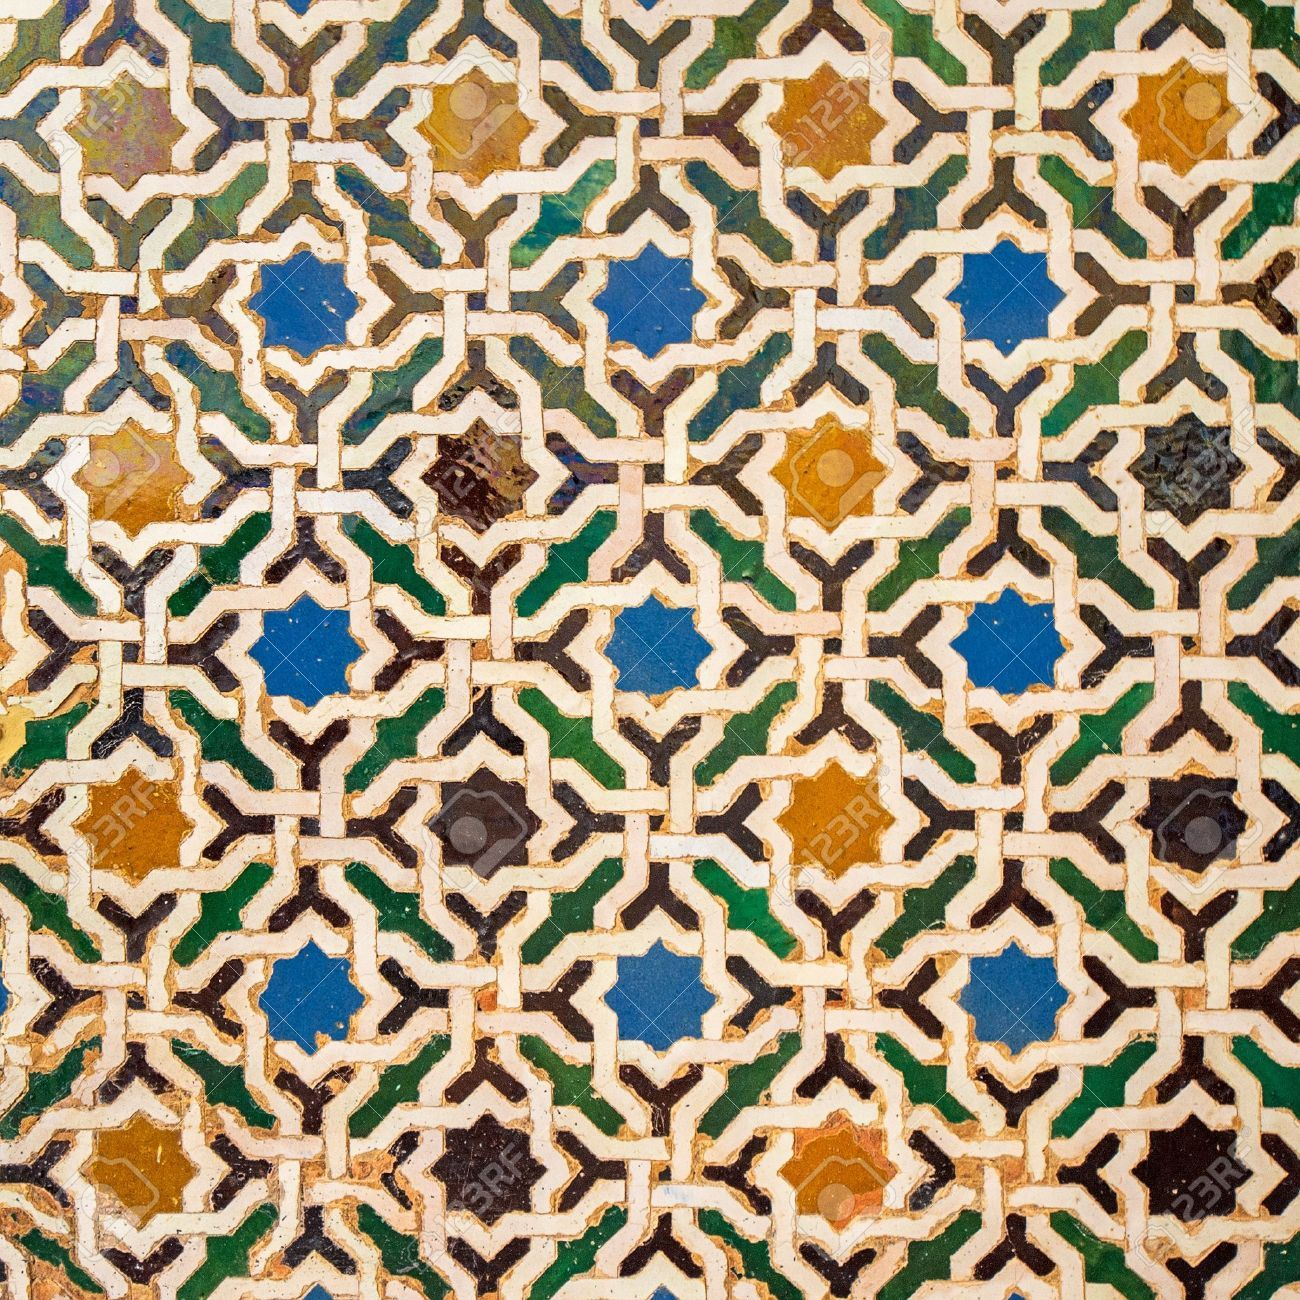 alhambra pattern - google zoeken | islamic patterns | pinterest